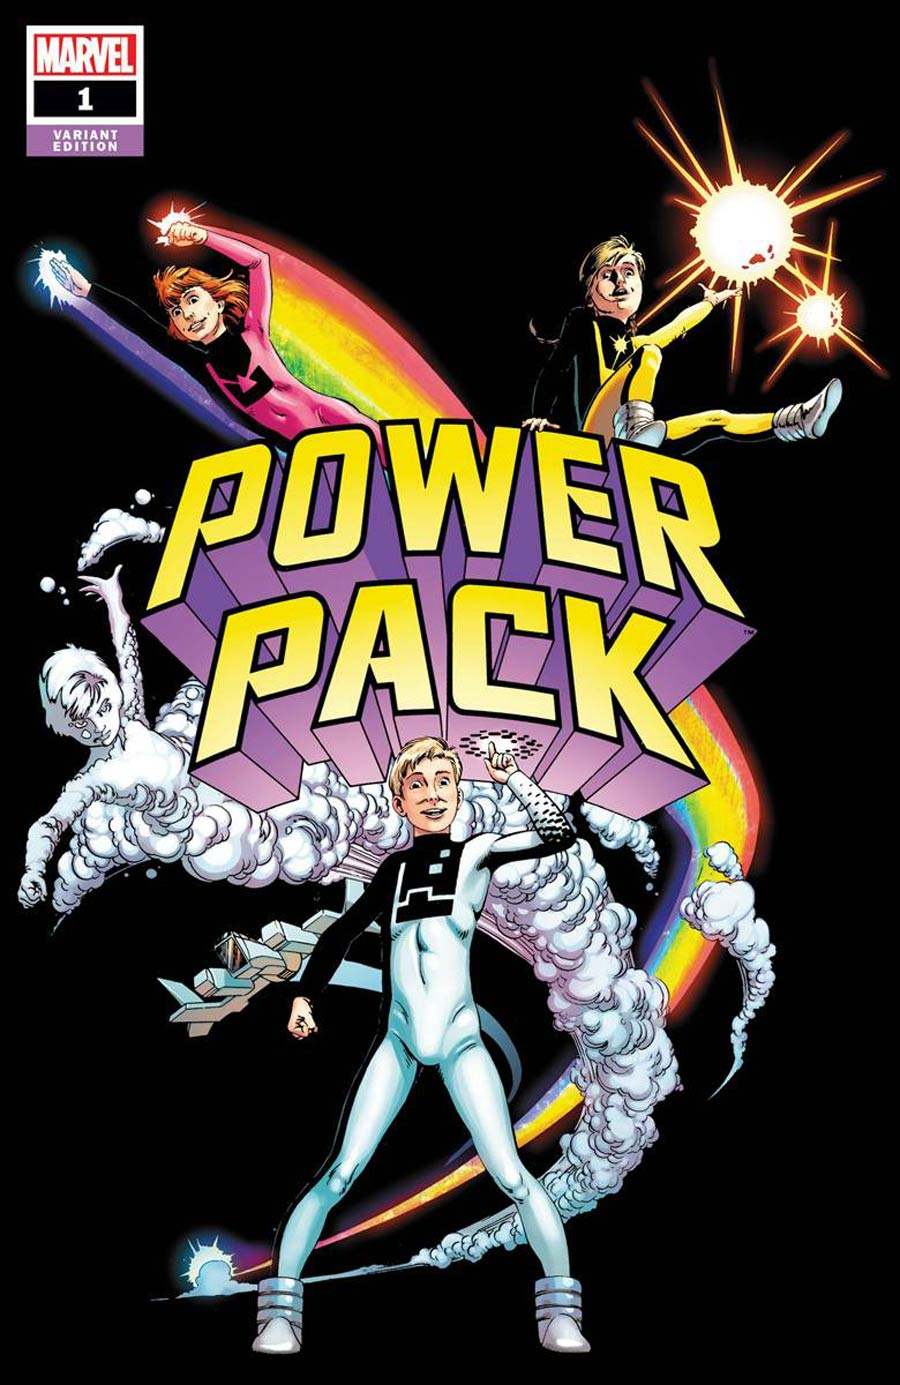 Power Pack Vol 4 #1 Cover E Incentive June Brigman Hidden Gem Variant Cover (Outlawed Tie-In)